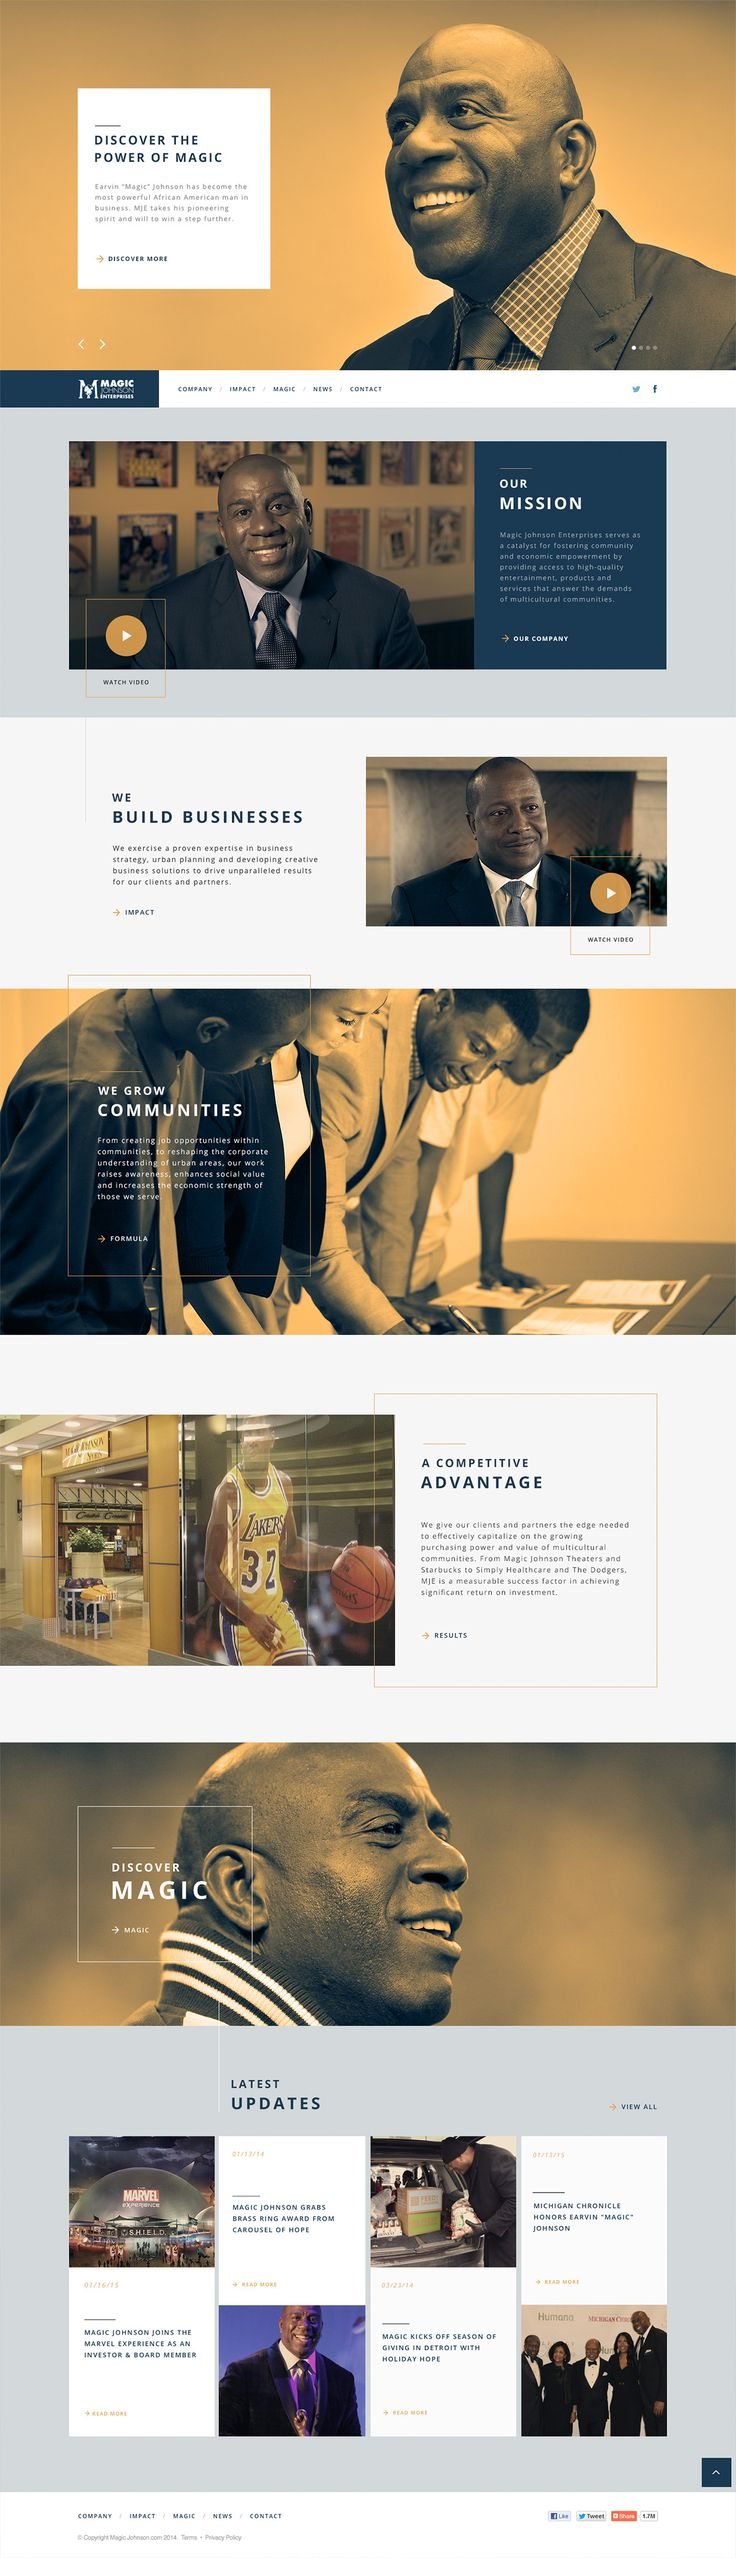 "Site design for Quantasy. Earvin ""Magic"" Johnson has become the most powerful African American man in business. MJE takes his pioneering spirit and will to win a step further."